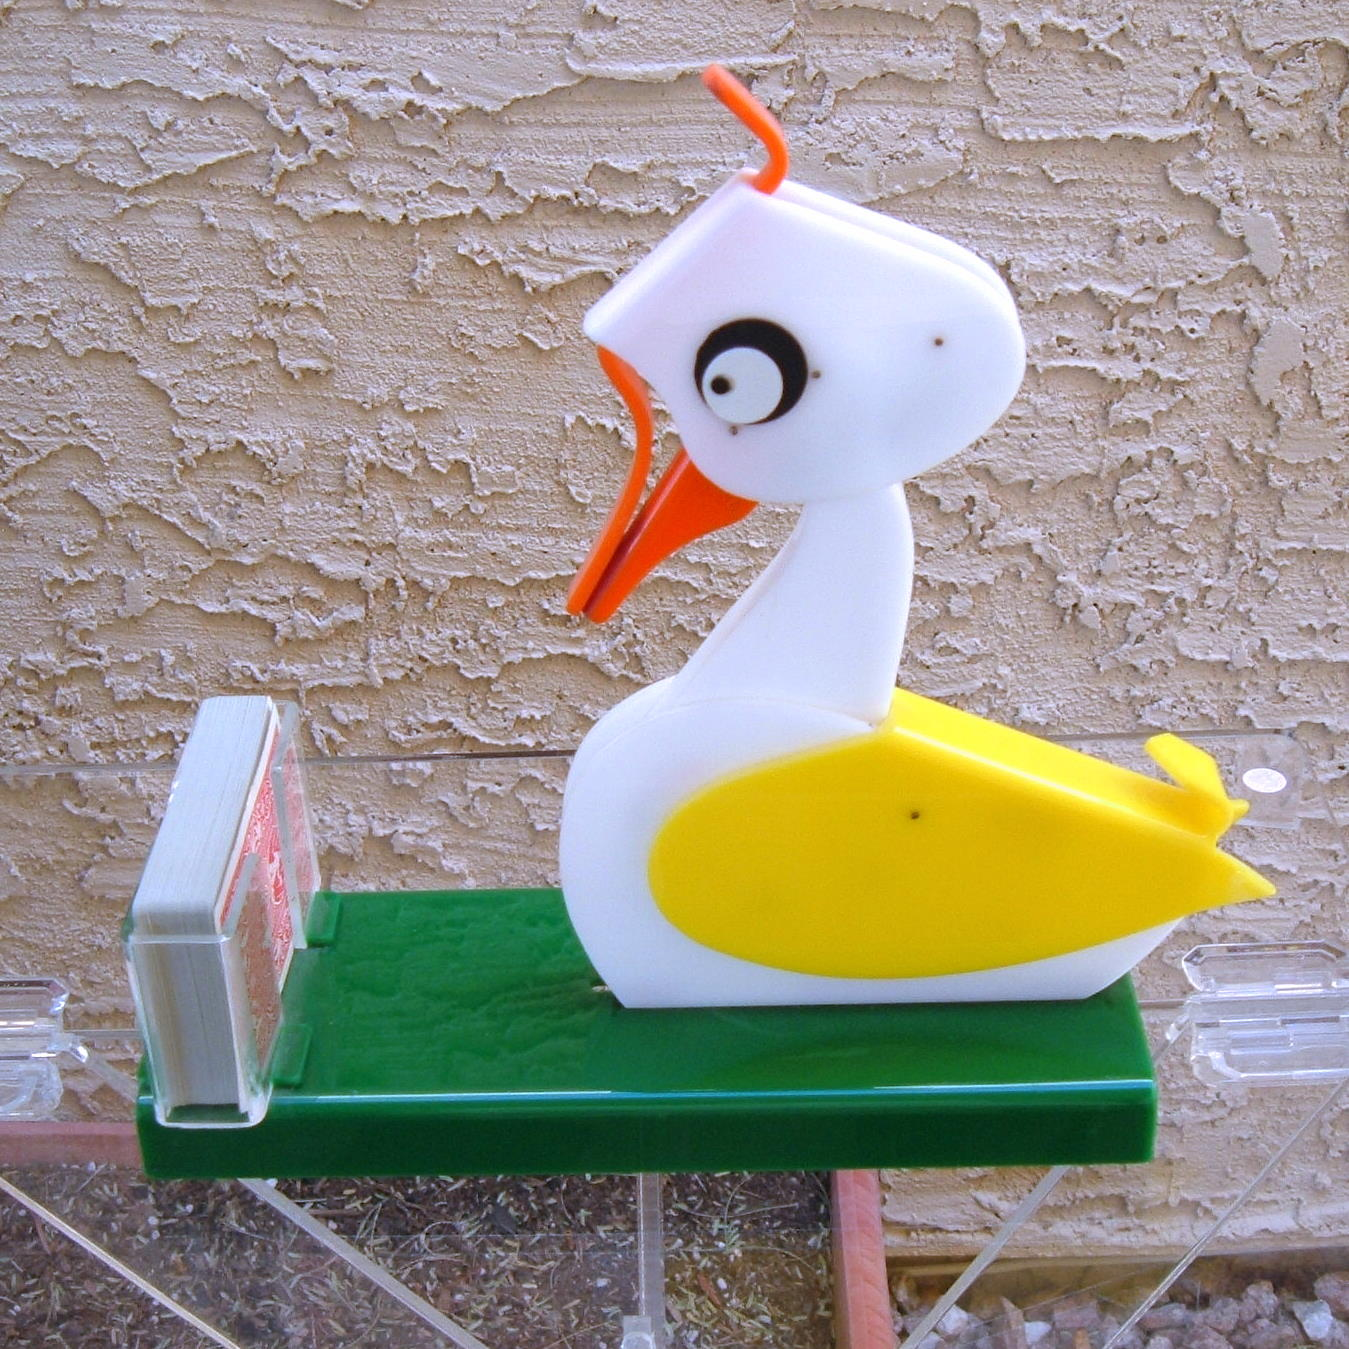 Herbie the Mod Duck by Herbert from Florida